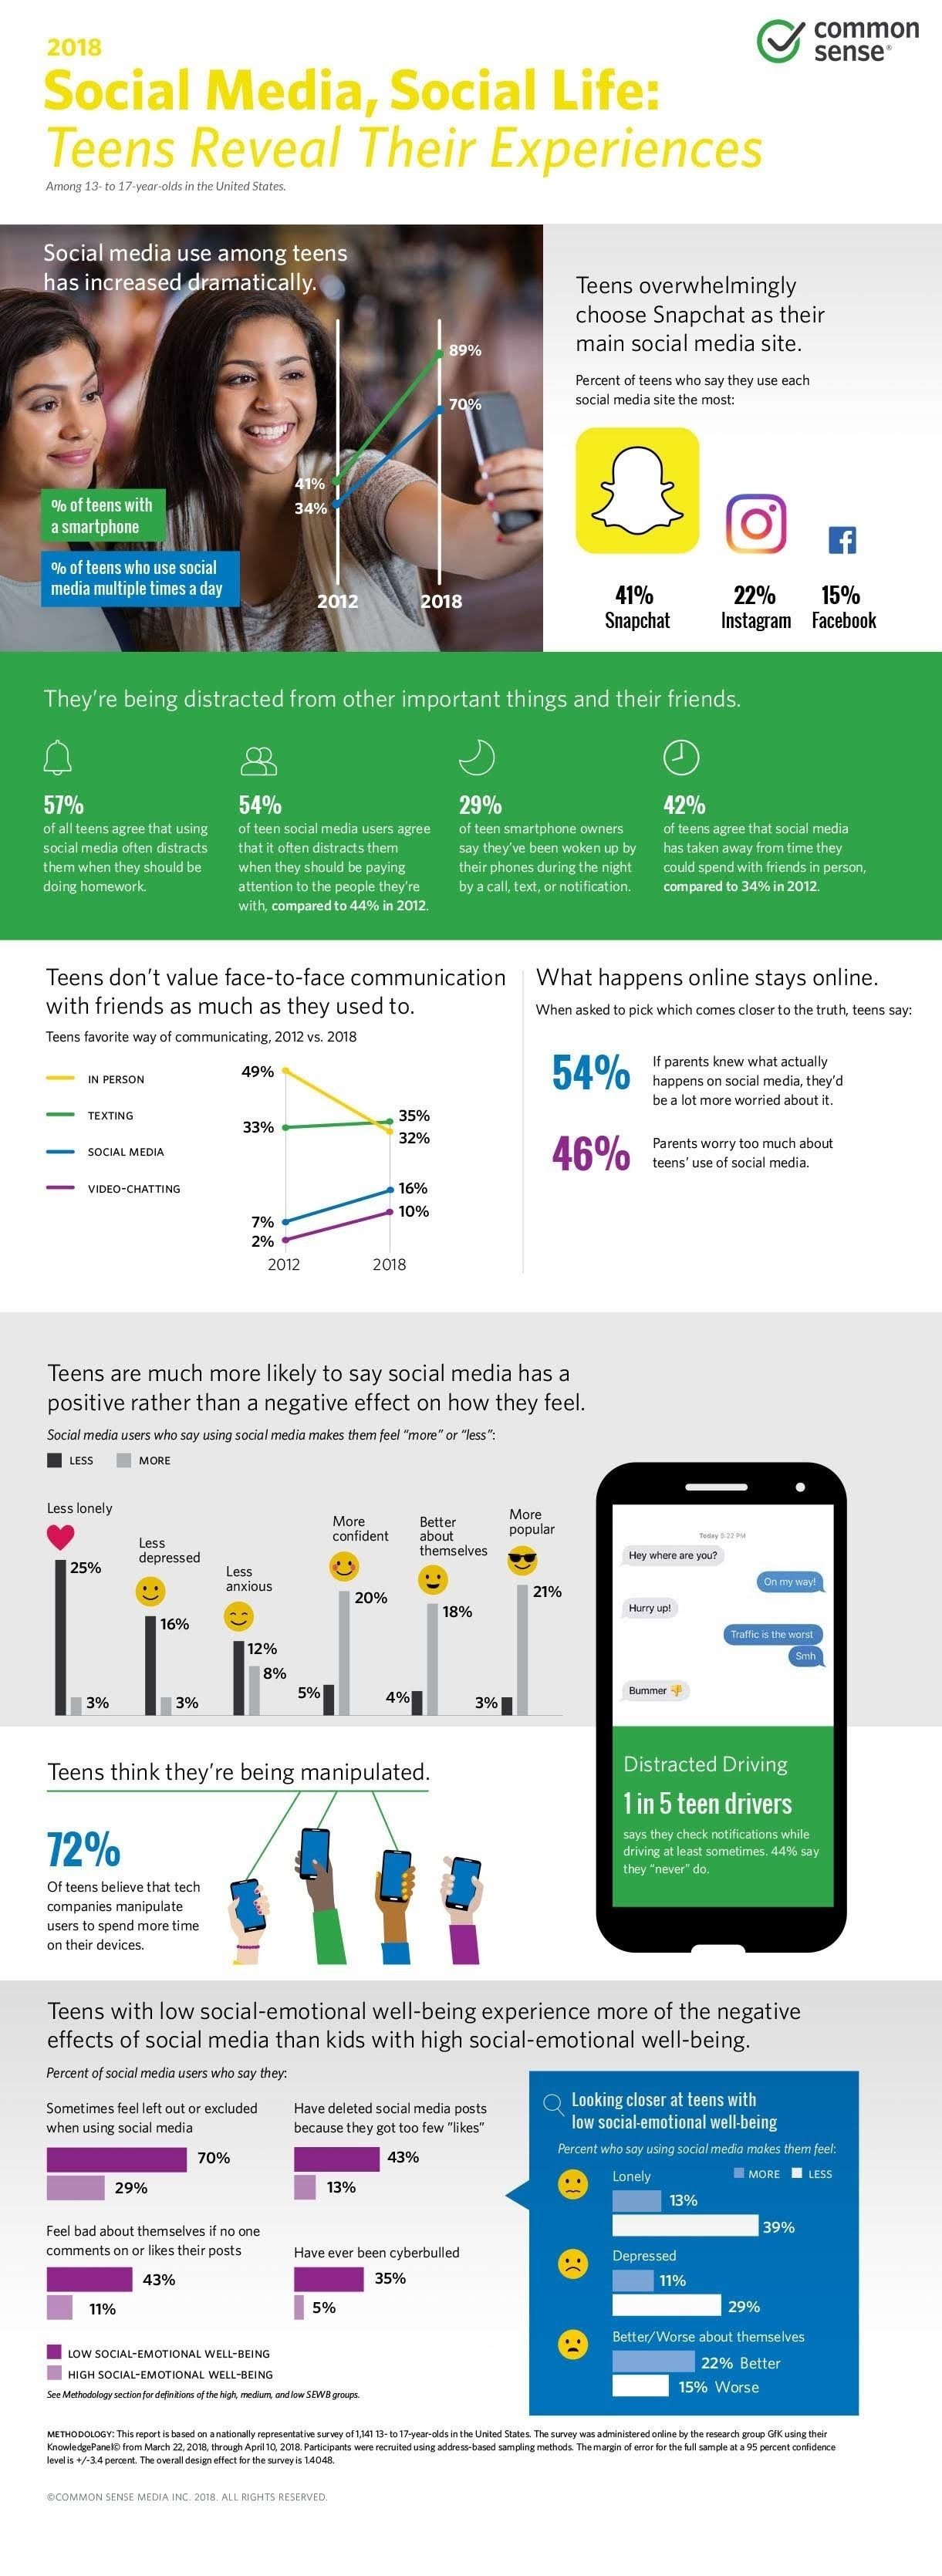 Social Media, Social Life: Teens Reveal Their Experiences #infographic